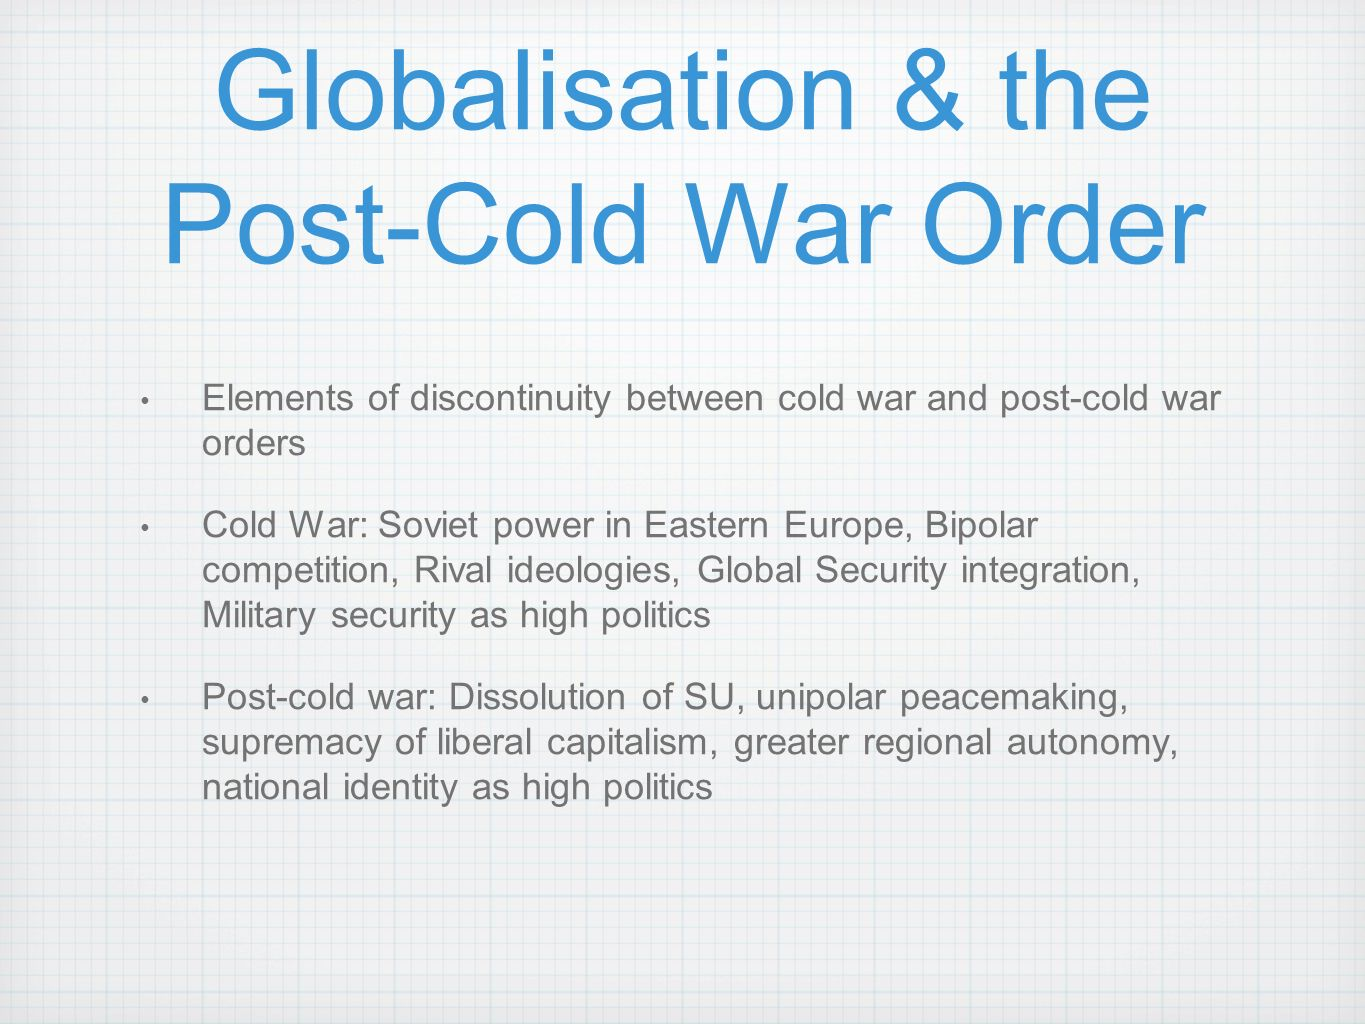 globalization the post cold war After a post-cold war decline, global military spending rose in 2000 to $800 billion.